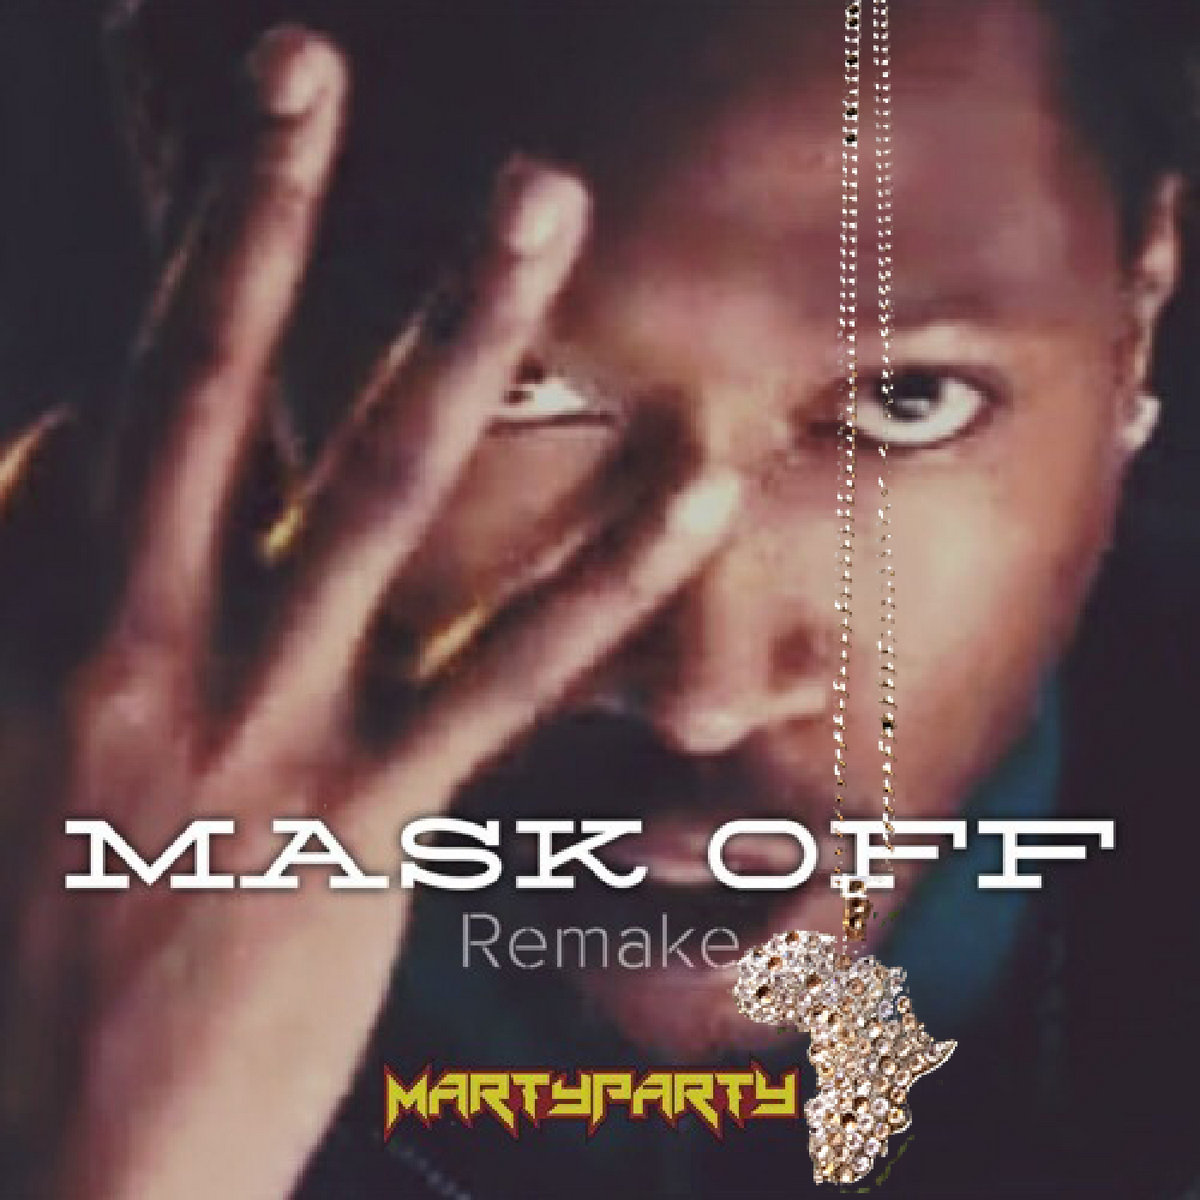 483e62875c6 Mask Off Remake. by MartyParty